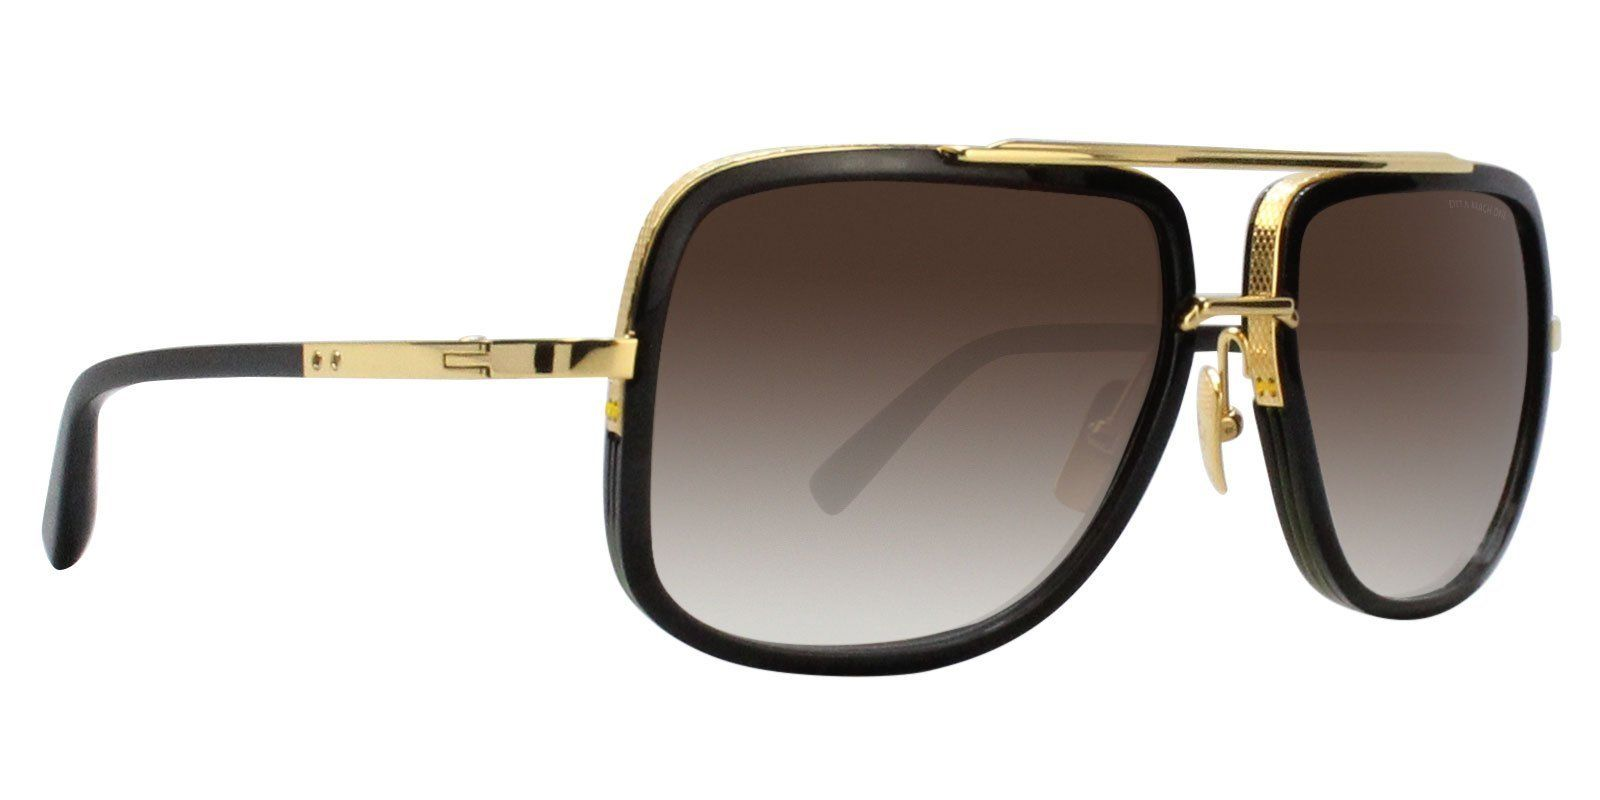 c442d86b8067 Dita - Mach One Black - Brown Sunglasses